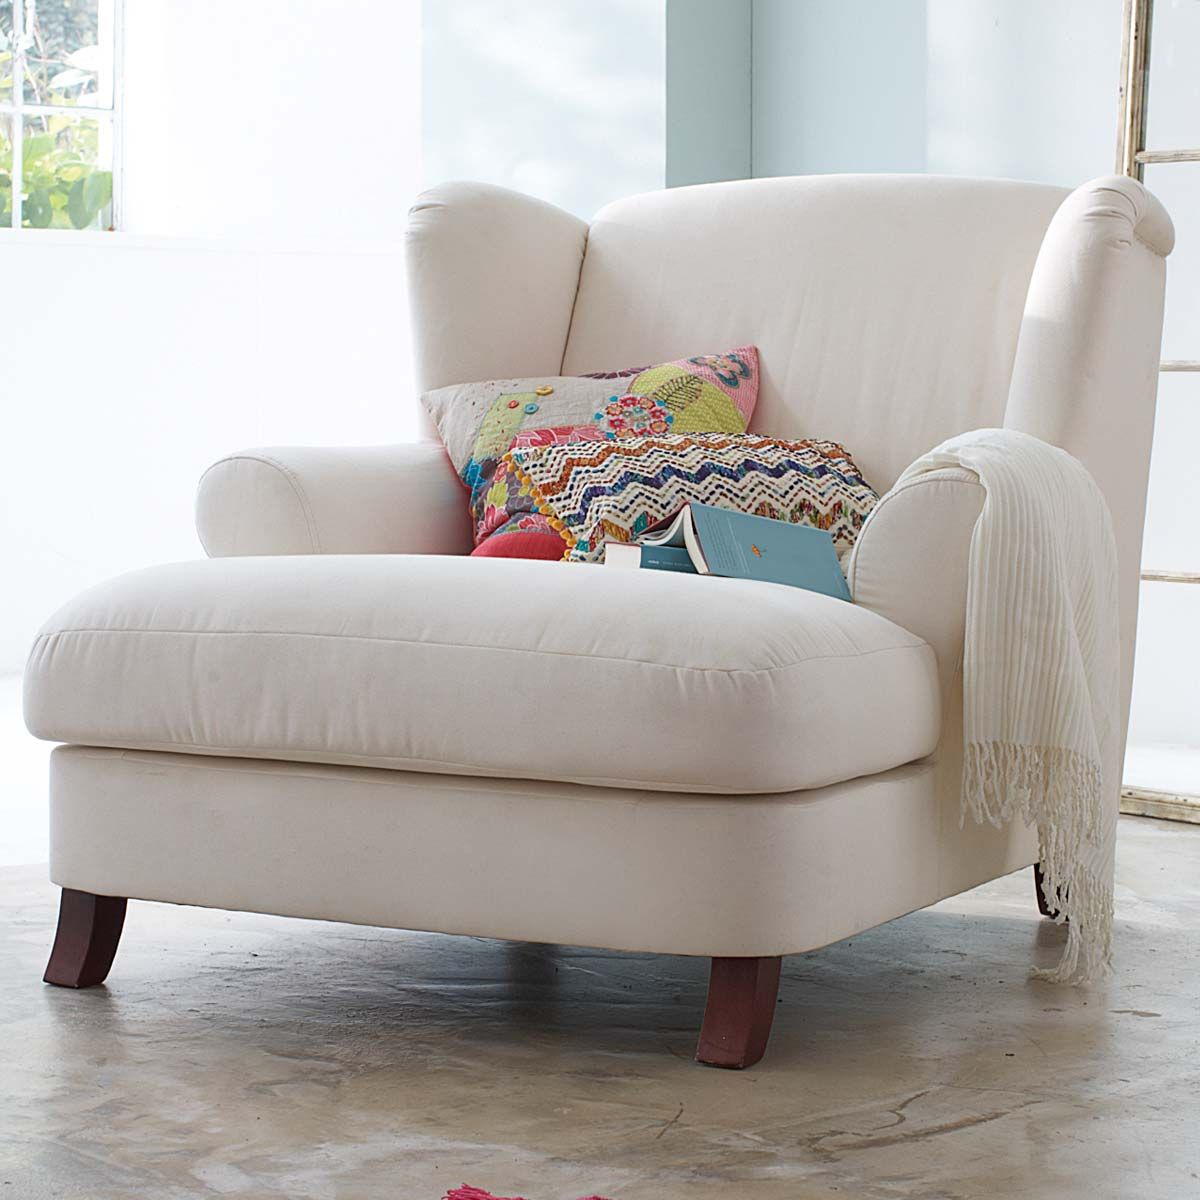 Oversized Comfy Chair Dream Chair Via Somewhere North To Build A Home